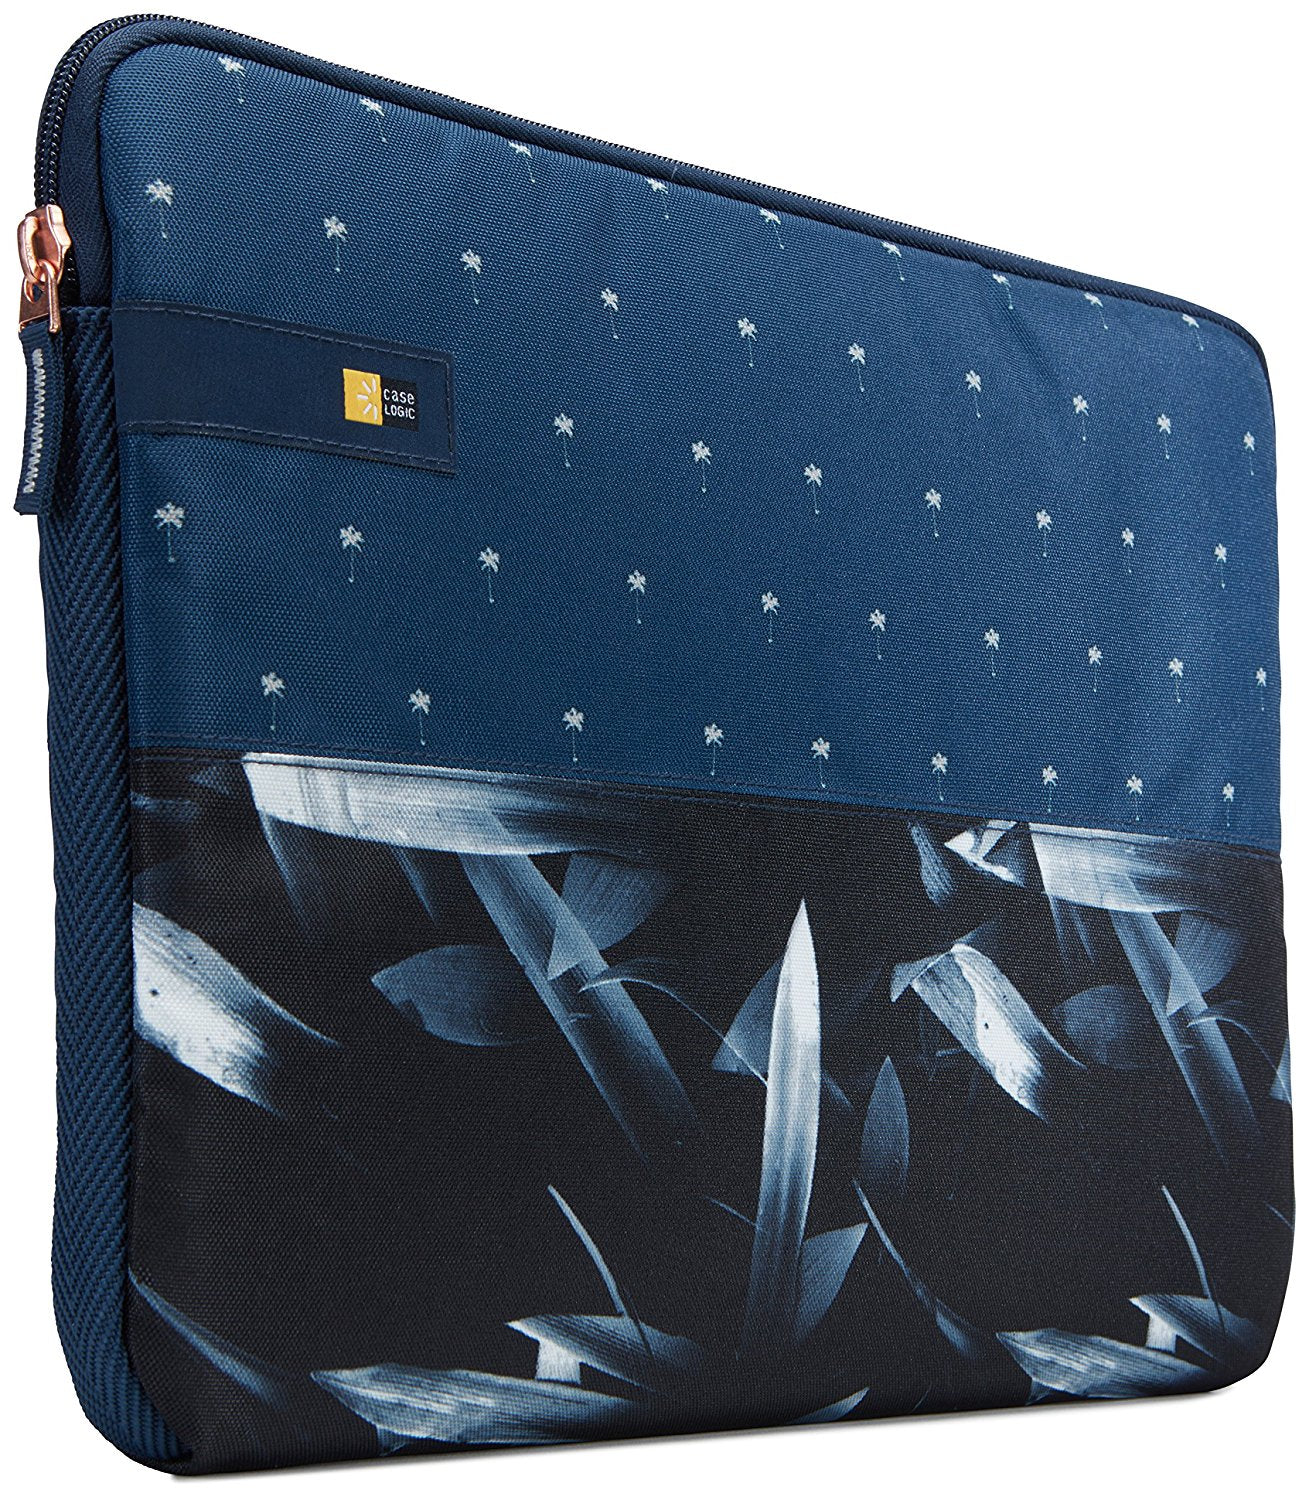 "Case Logic Hayes Sleeve for 15.6"" Laptop (HAYS 115 DPM)"